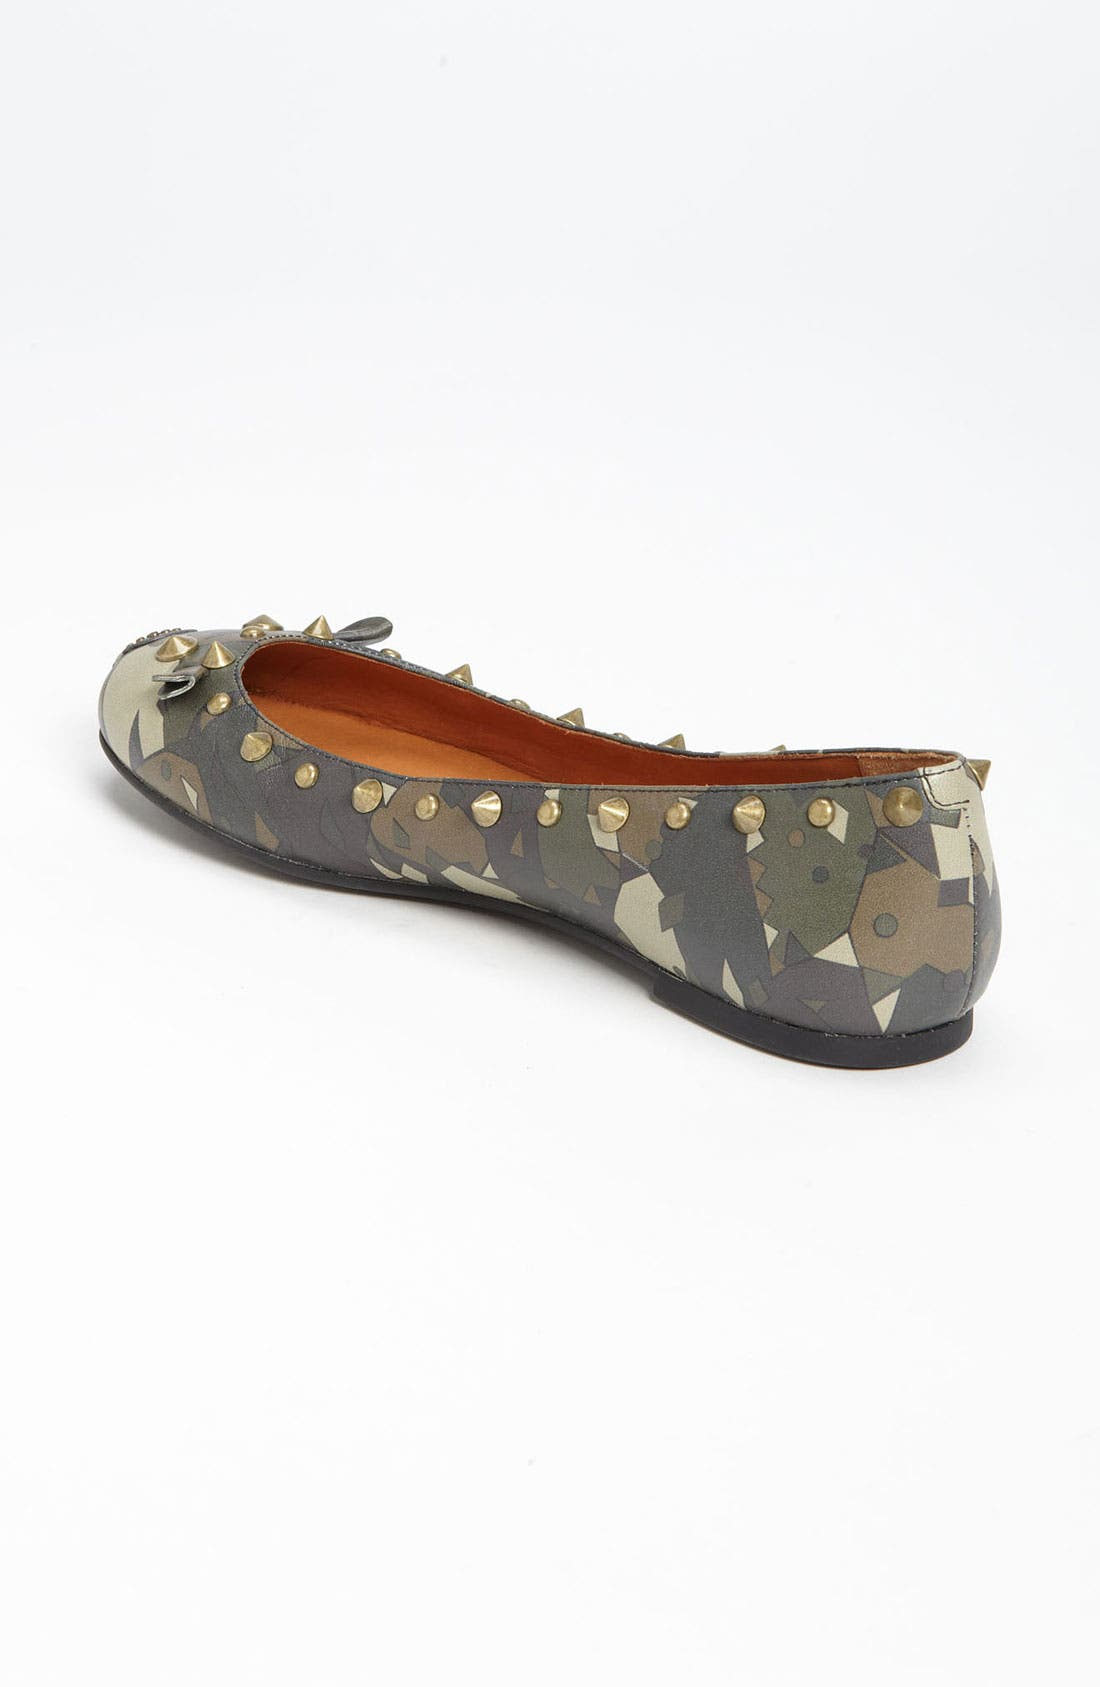 MARC BY MARC JACOBS 'Mouse' Ballerina Flat,                             Alternate thumbnail 4, color,                             357